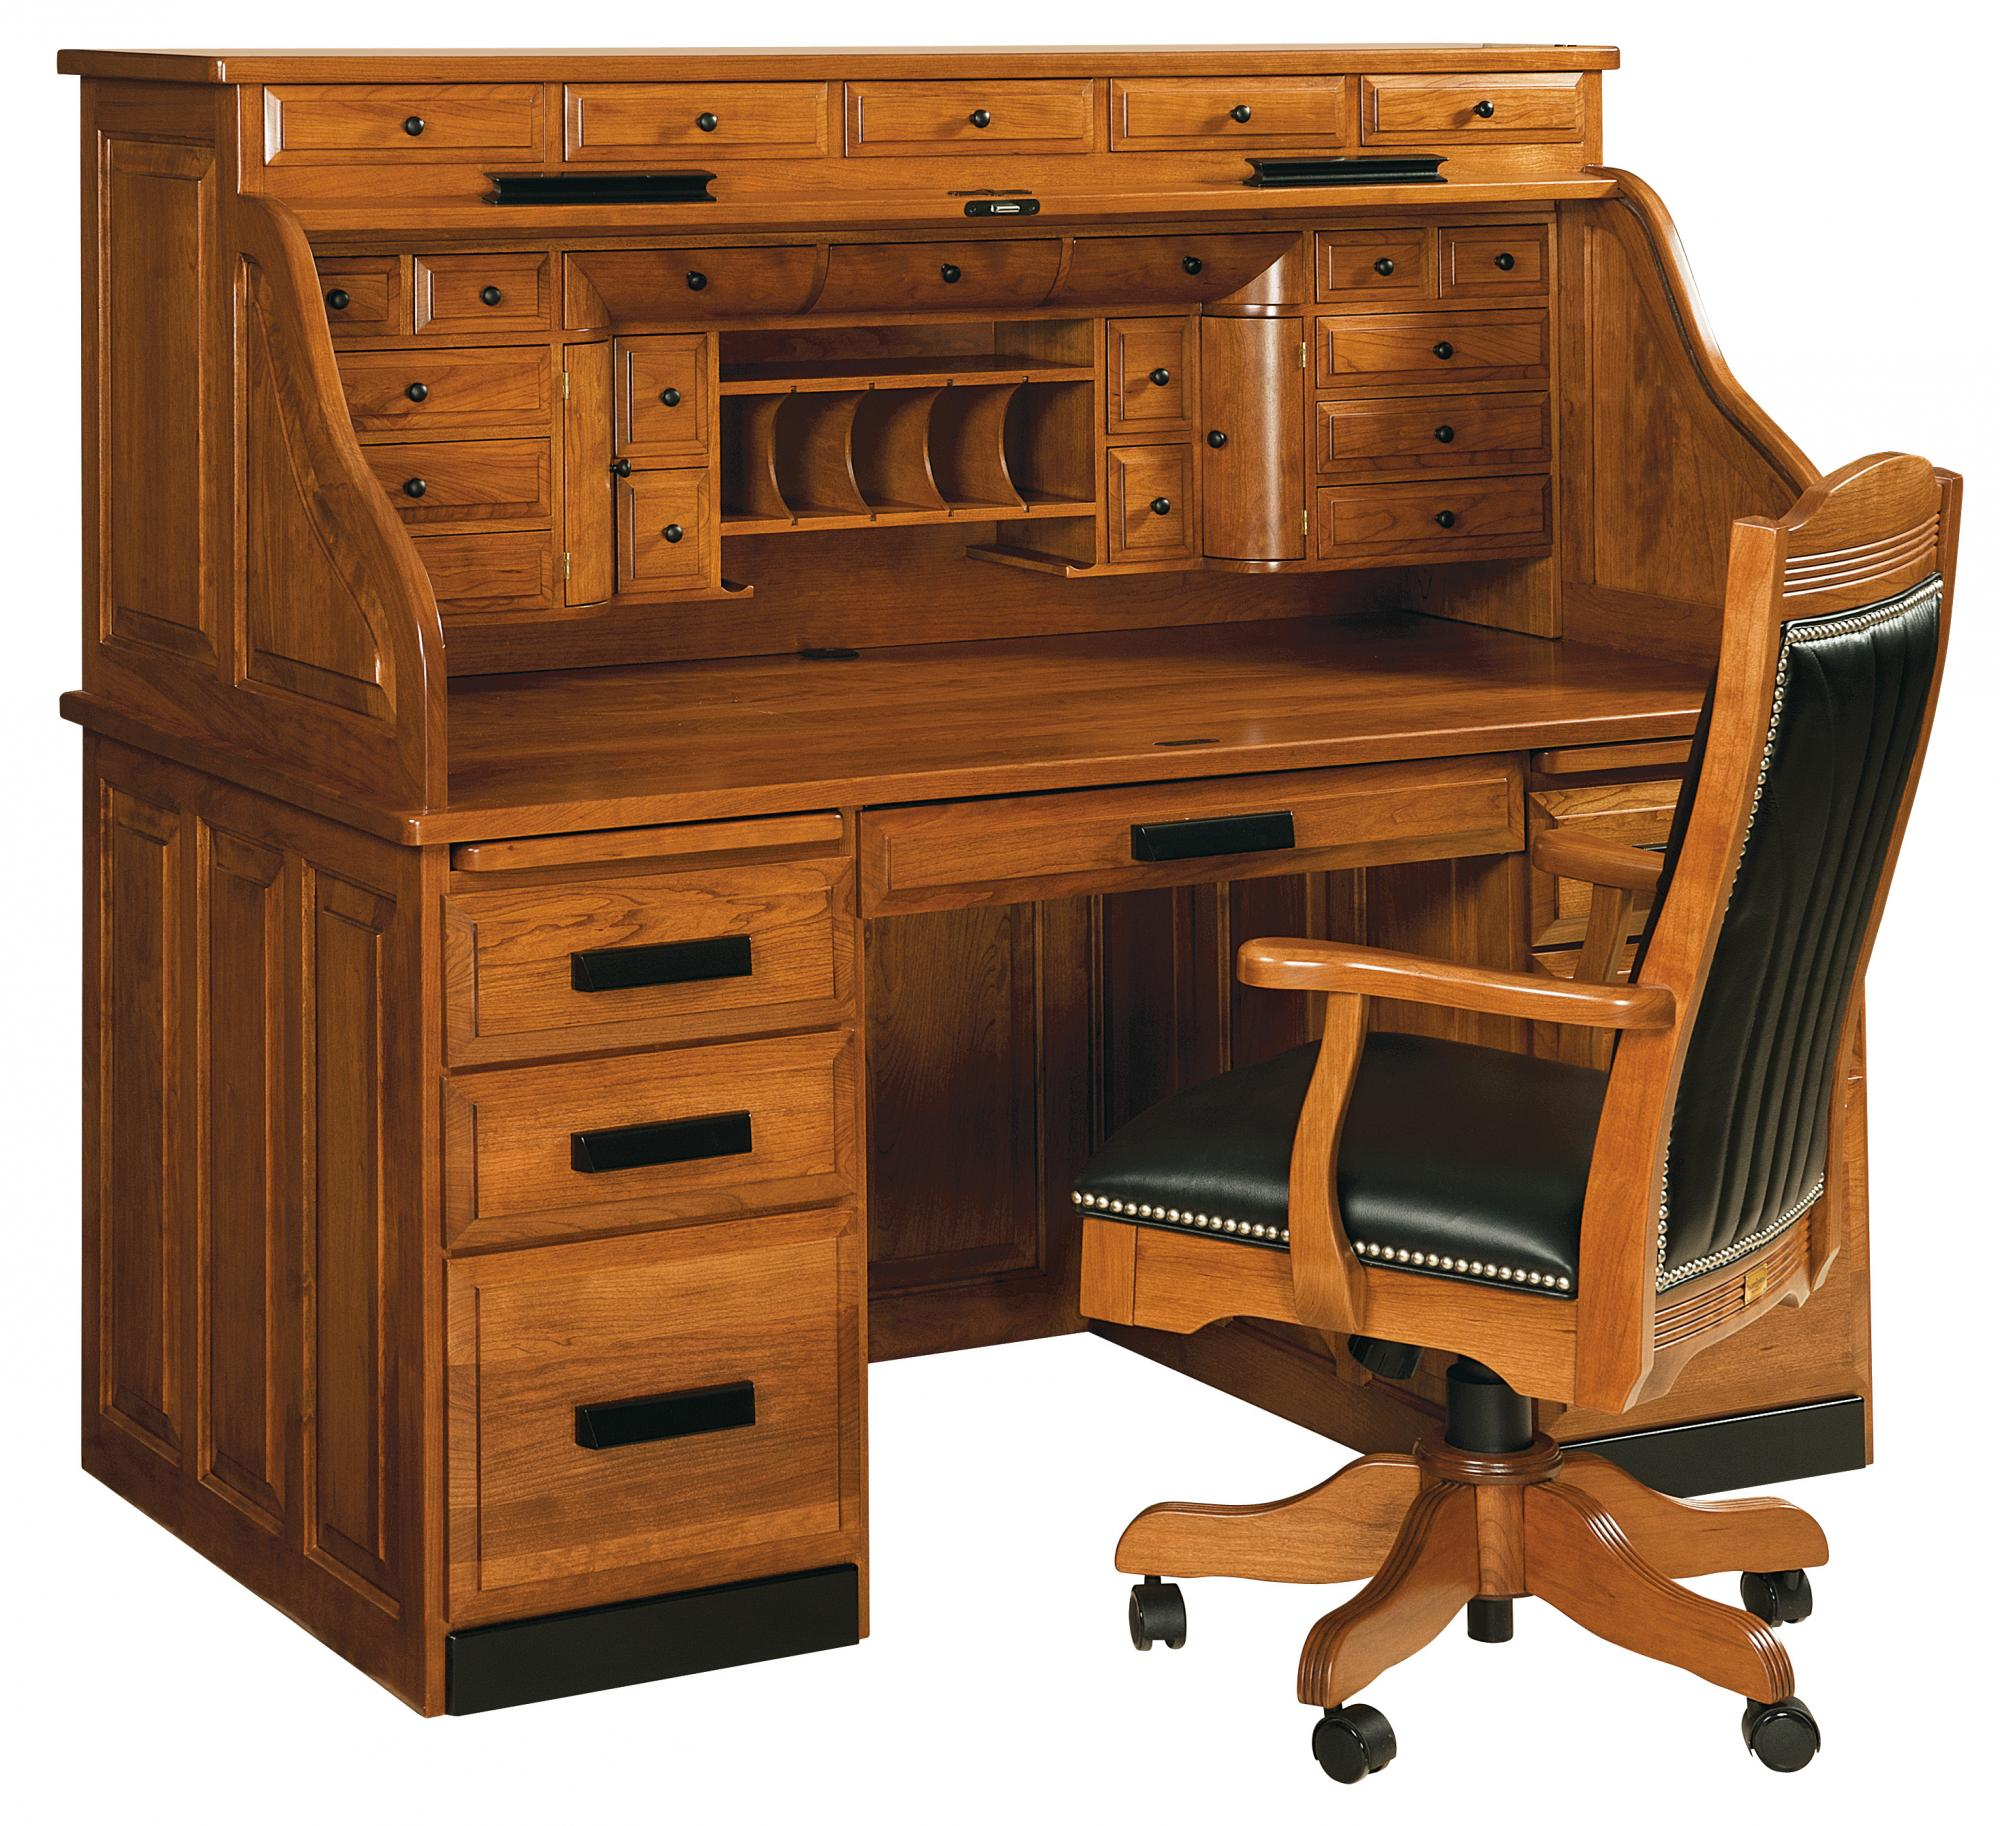 classic deluxe roll top desk amish furniture store mankato mn. Black Bedroom Furniture Sets. Home Design Ideas